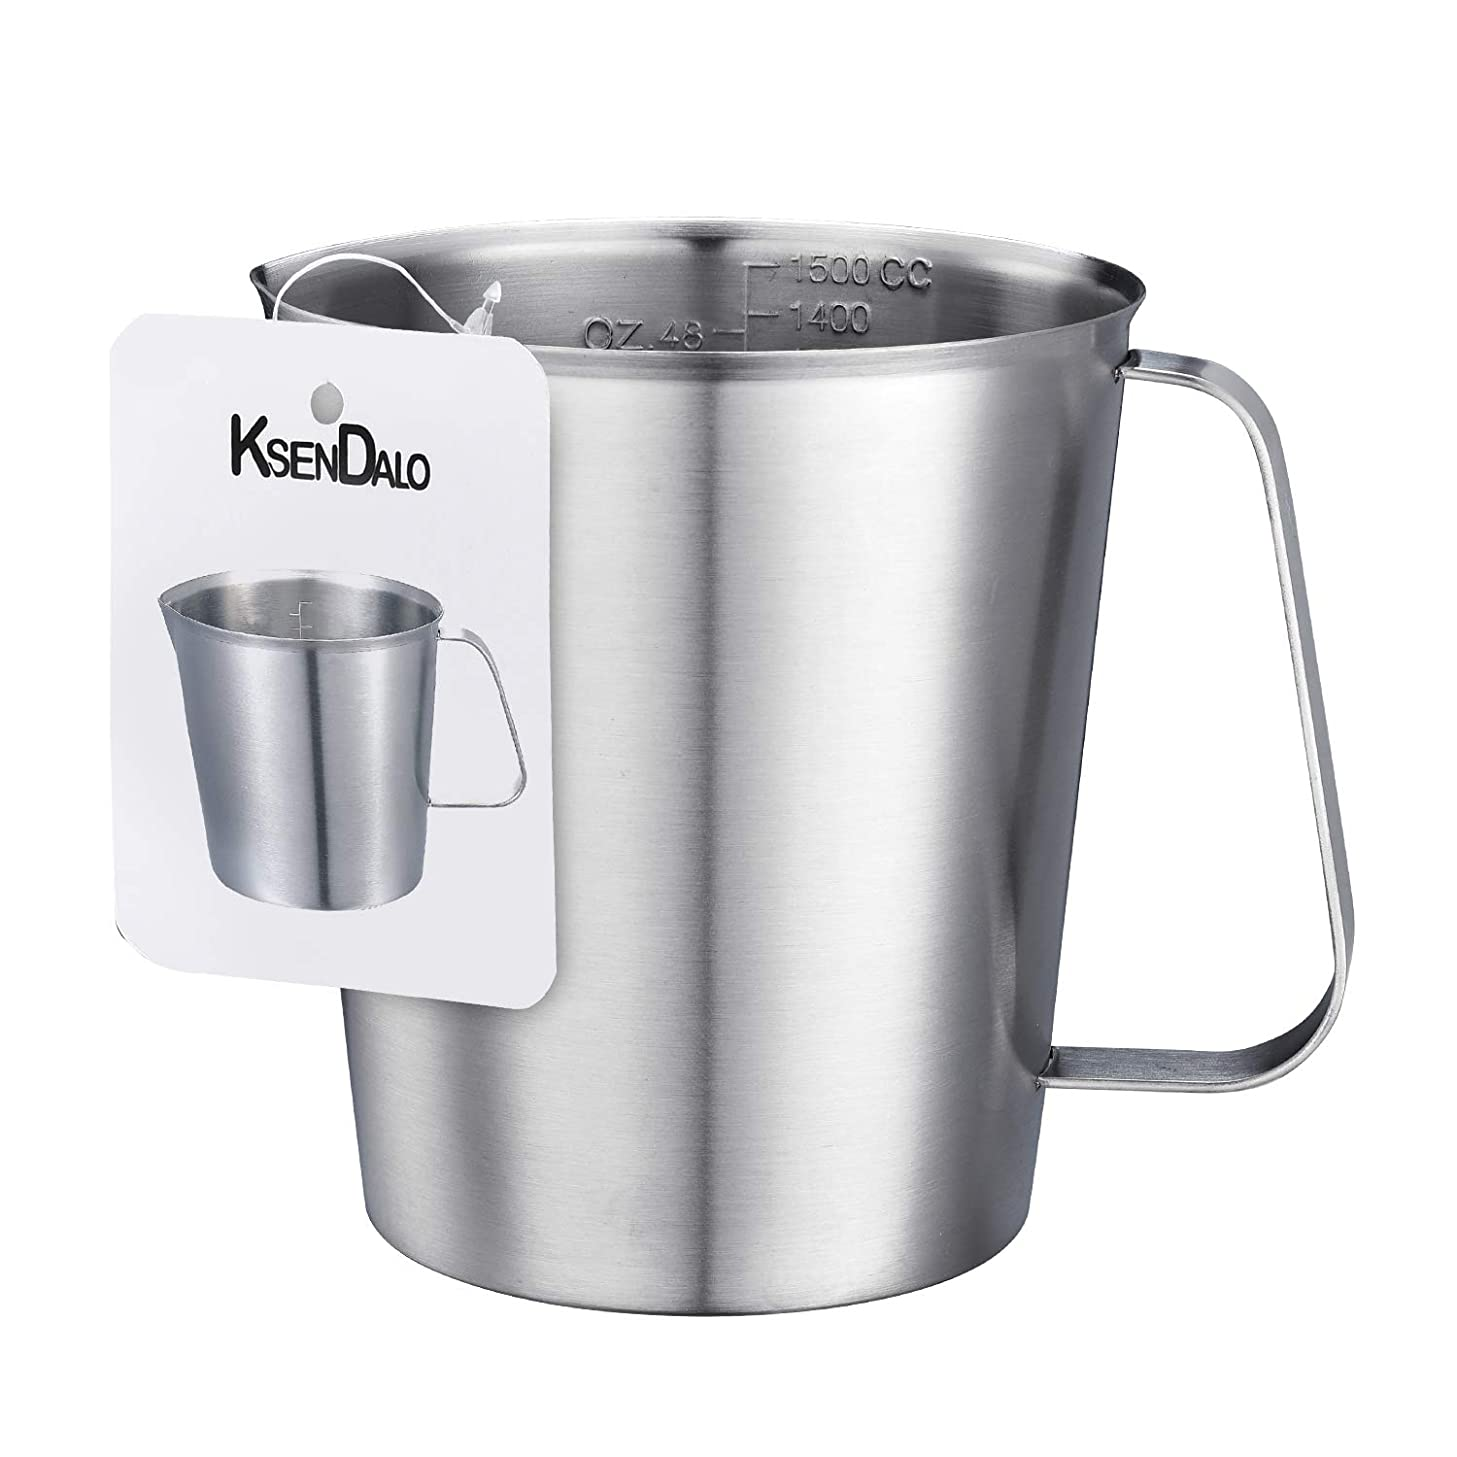 Kitchen Measuring Cup, KSENDALO 48Oz Cooking Measuring Cup for Baking Use, Large Frothing Pitcher with Marking with Handle, (1500ML, 6 Cup)